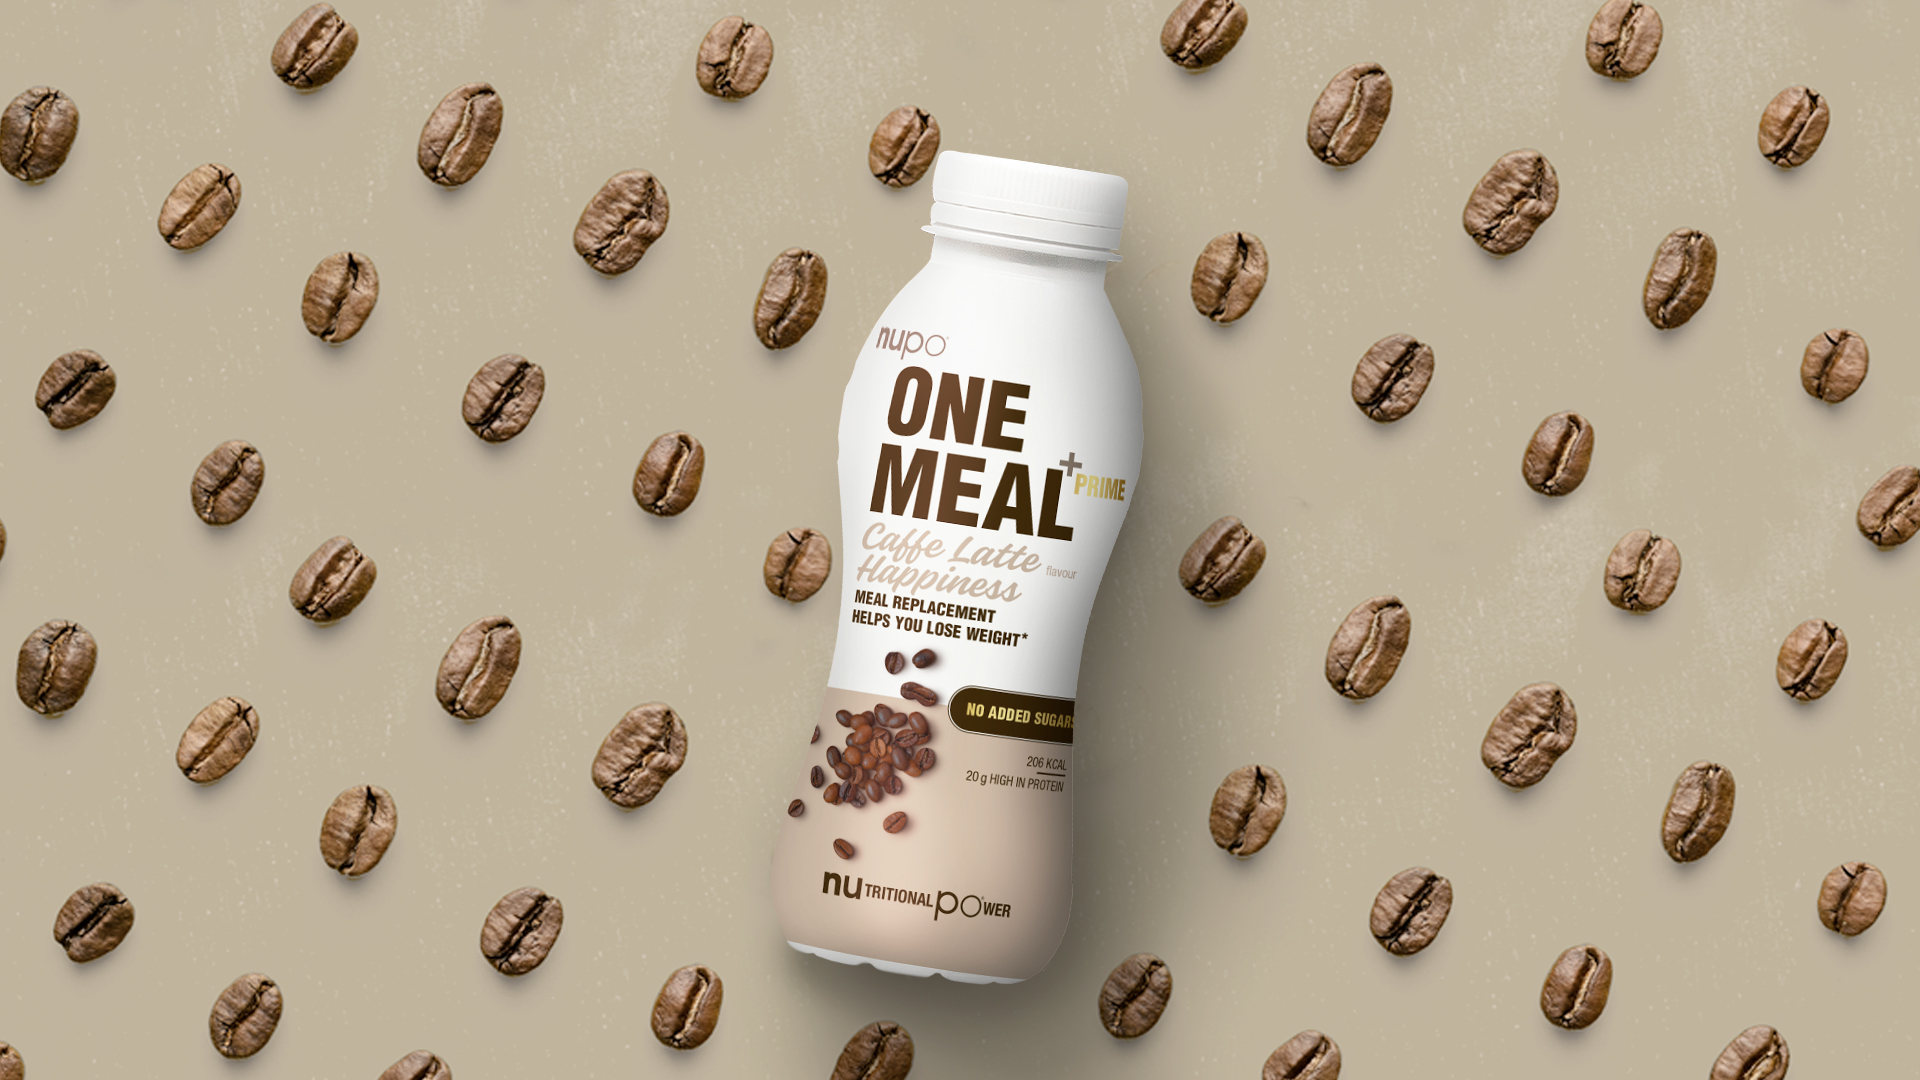 one-meal-caffe-latte-shake-for-weight-loss-meal-replacement